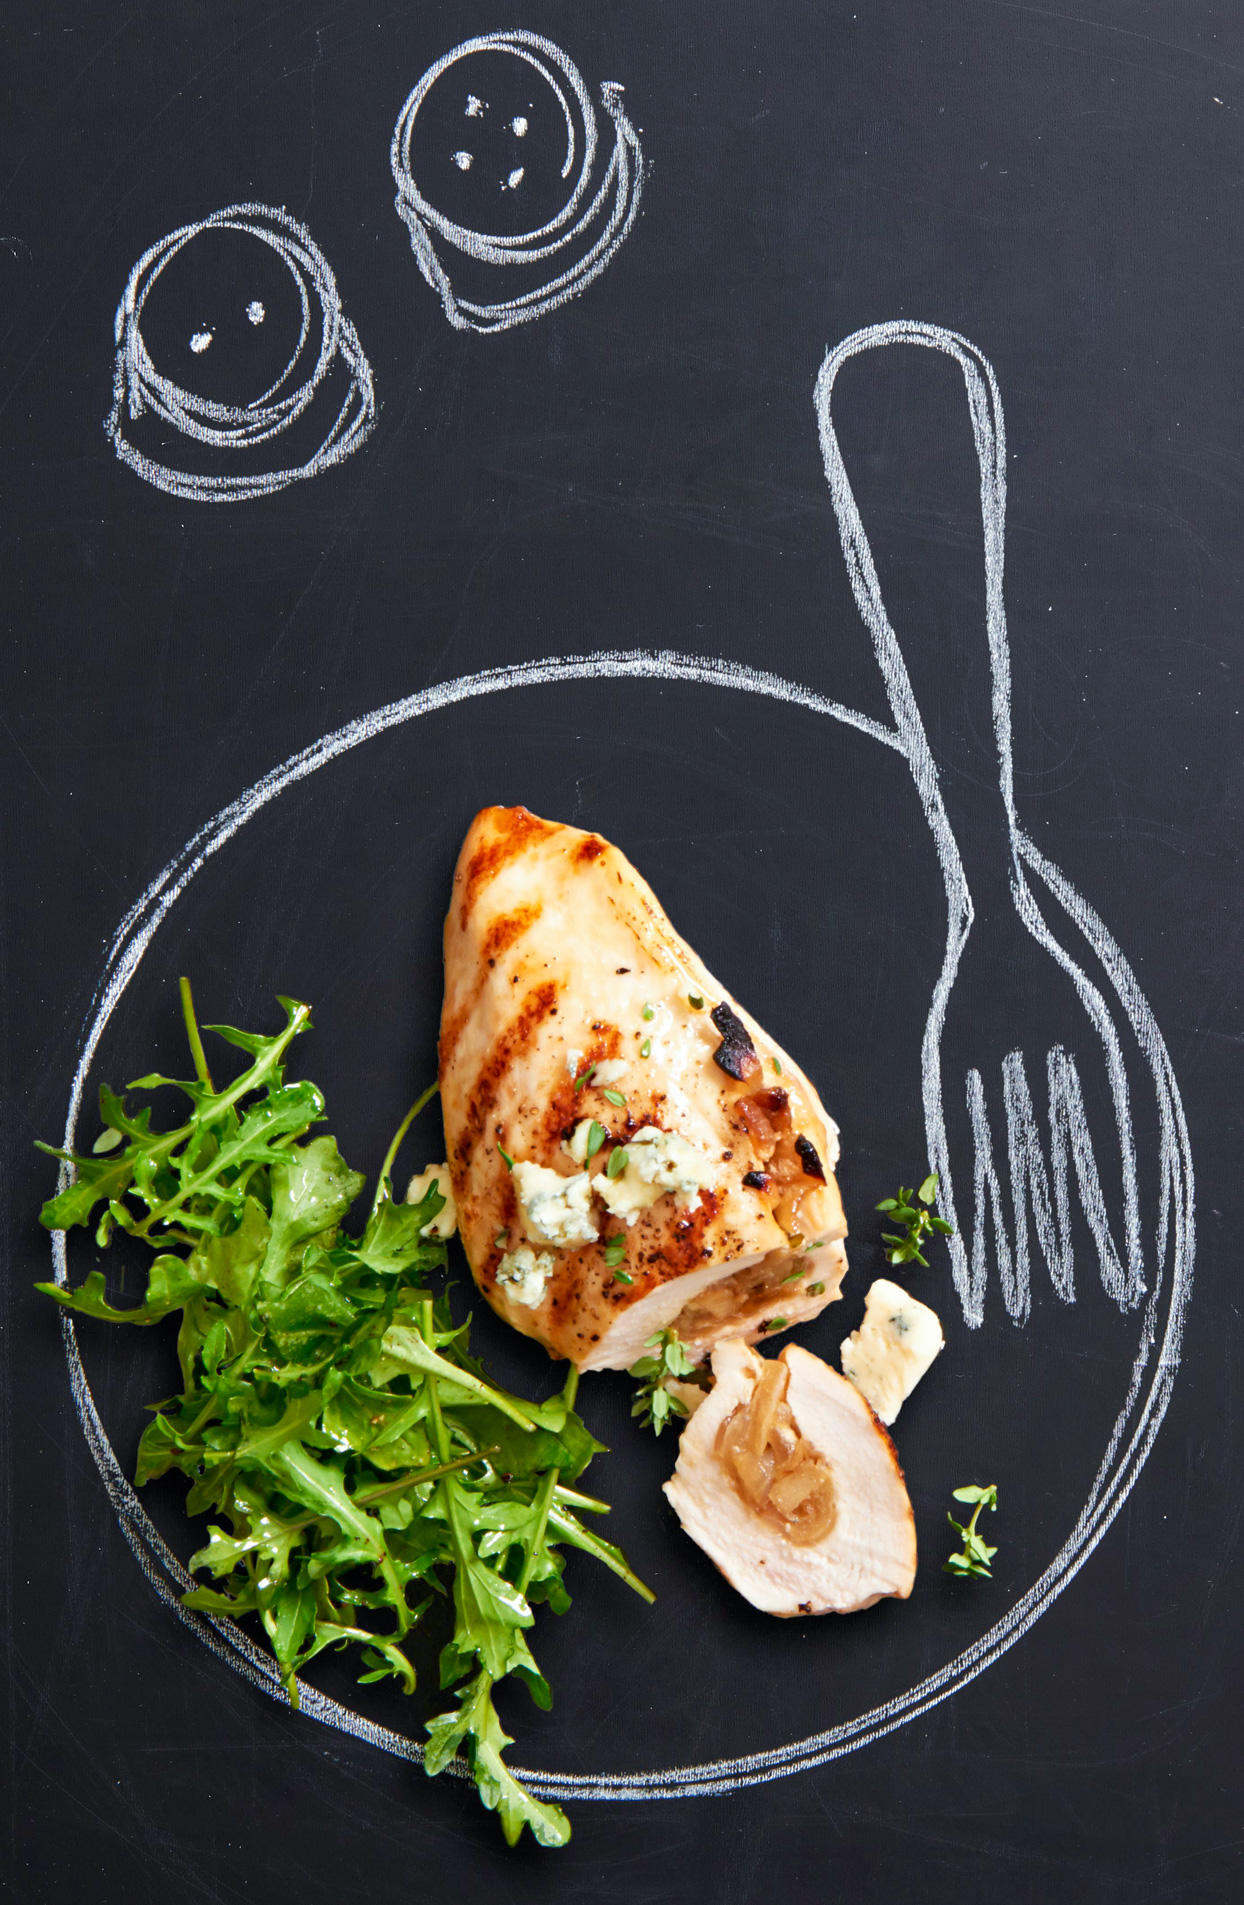 Caramelized Onion and Apple-Stuffed Chicken Breasts